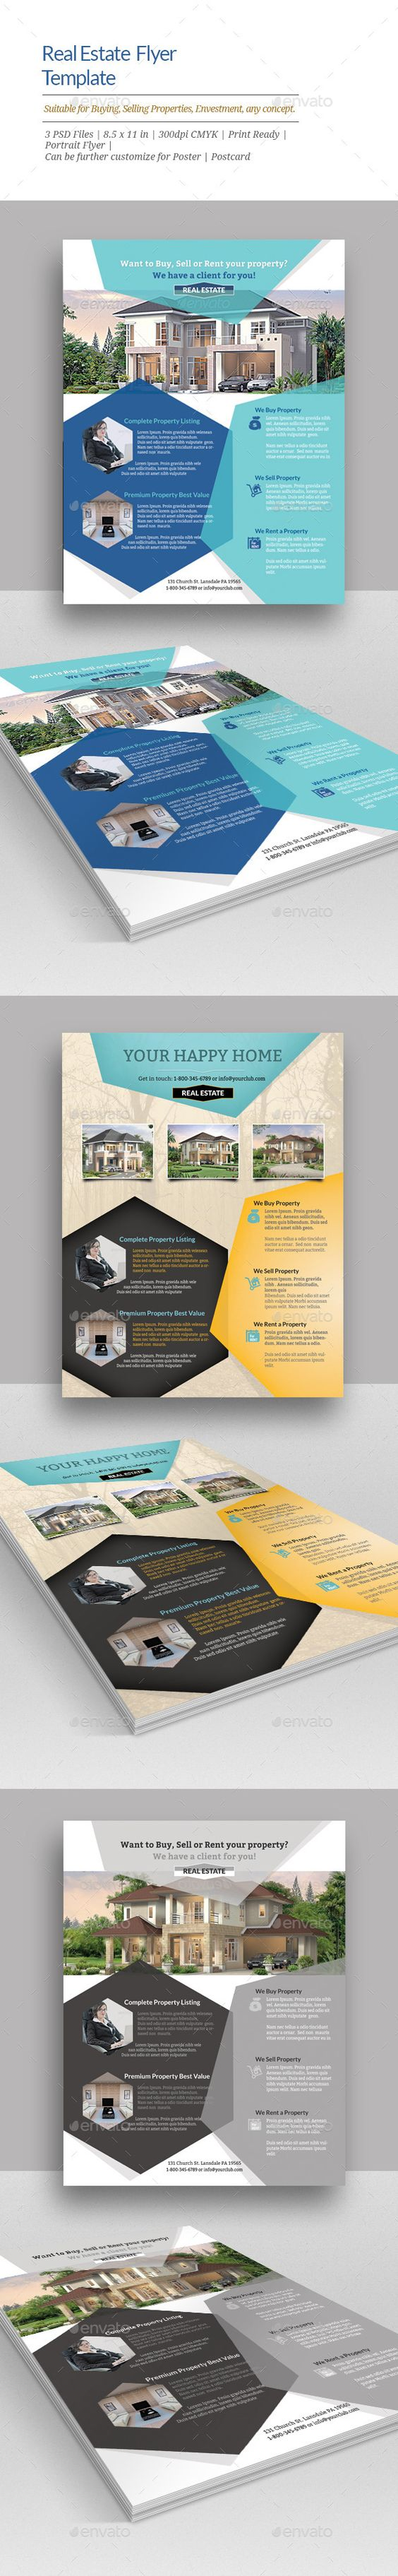 the world s catalog of ideas realtor flyer marketing realtor templates marketing flyers templates marketing ideas flyer design brochure design corporate design